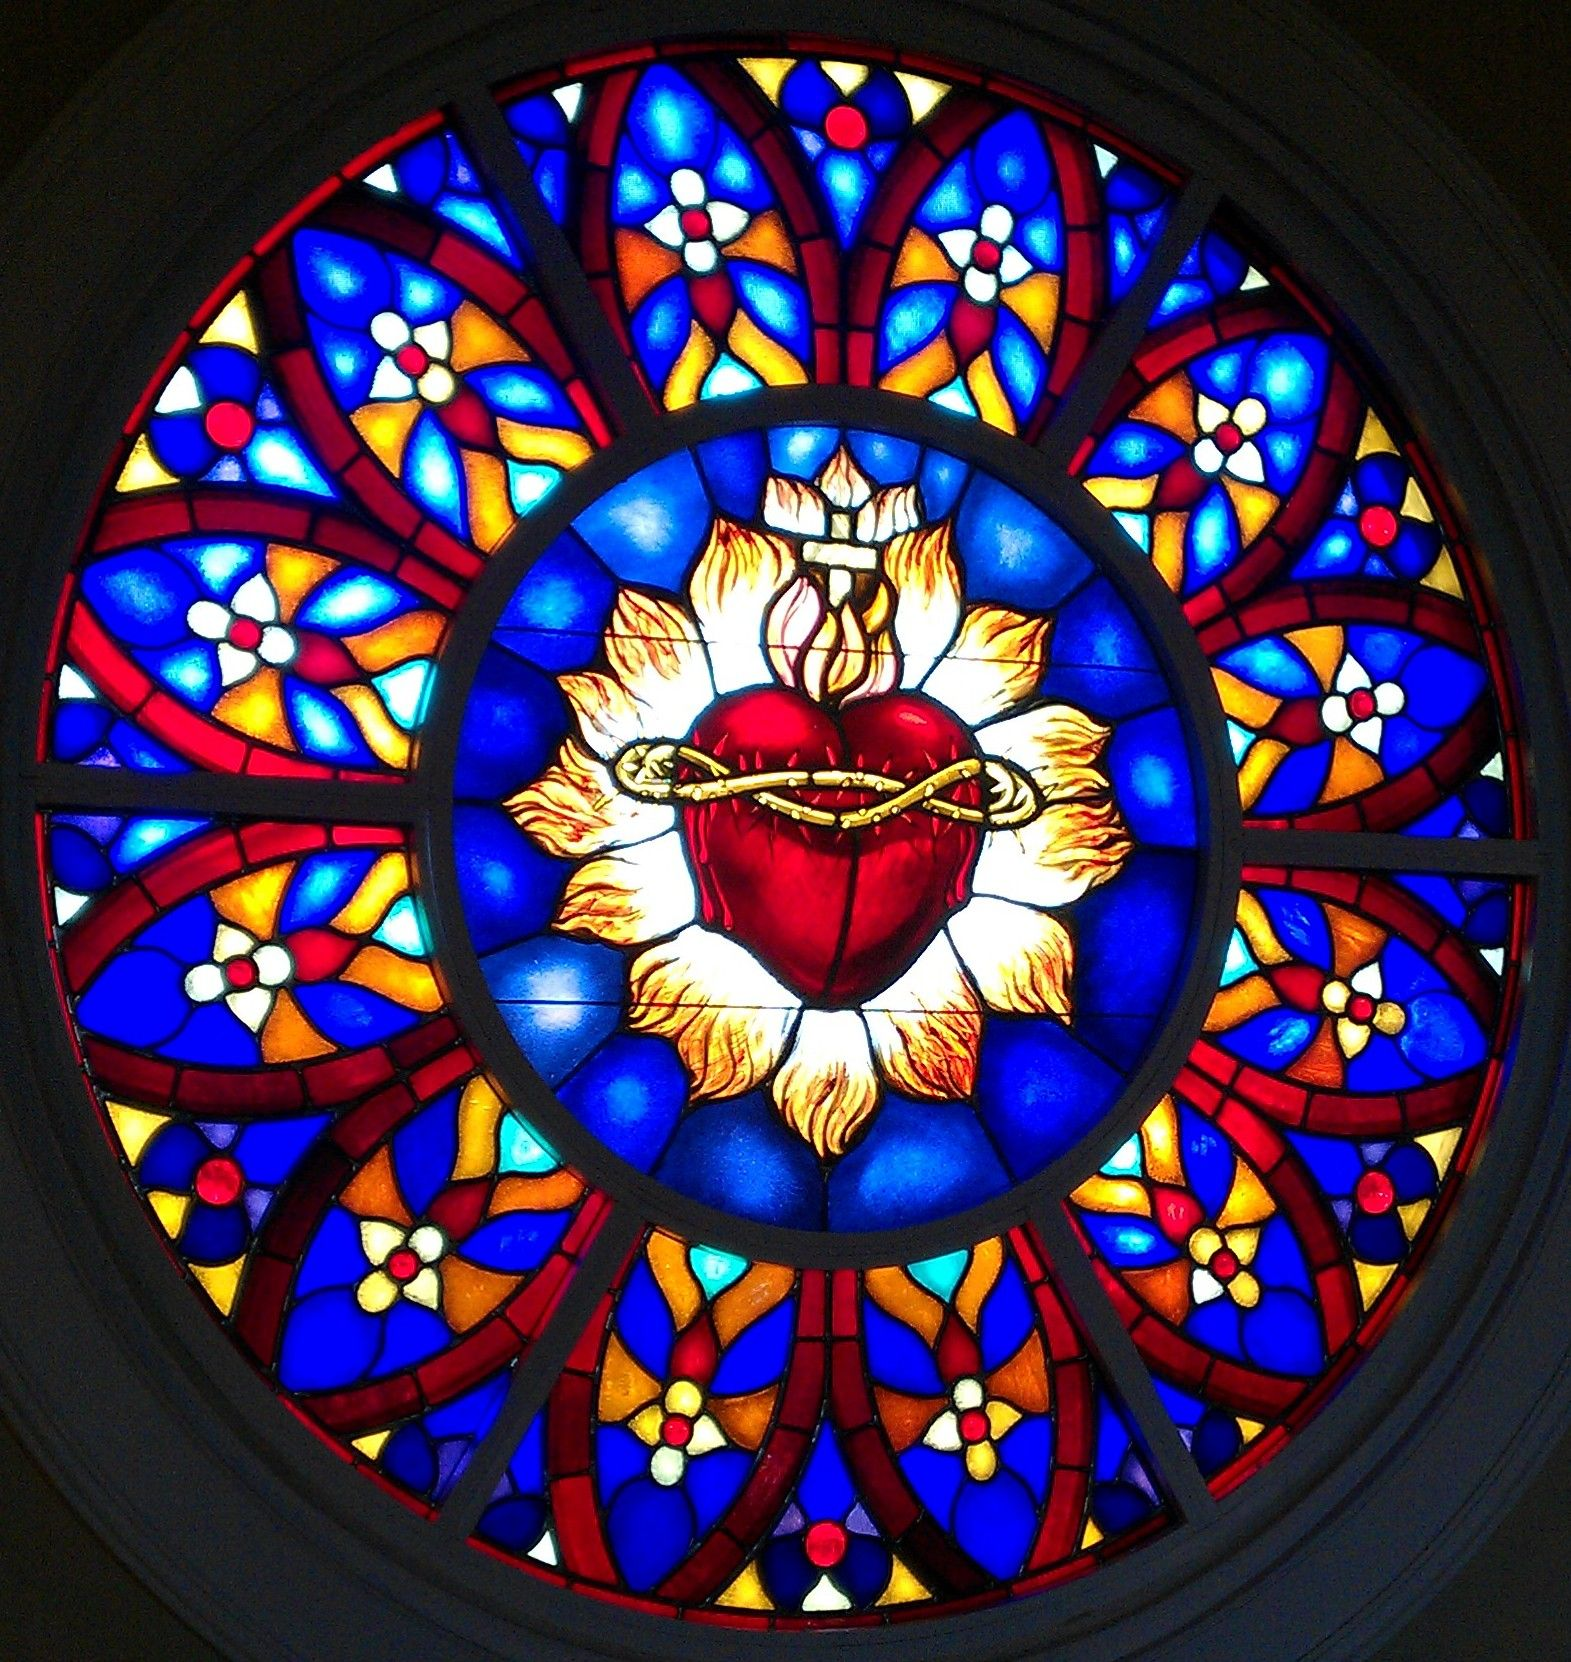 Image result for heart of christ stained glass